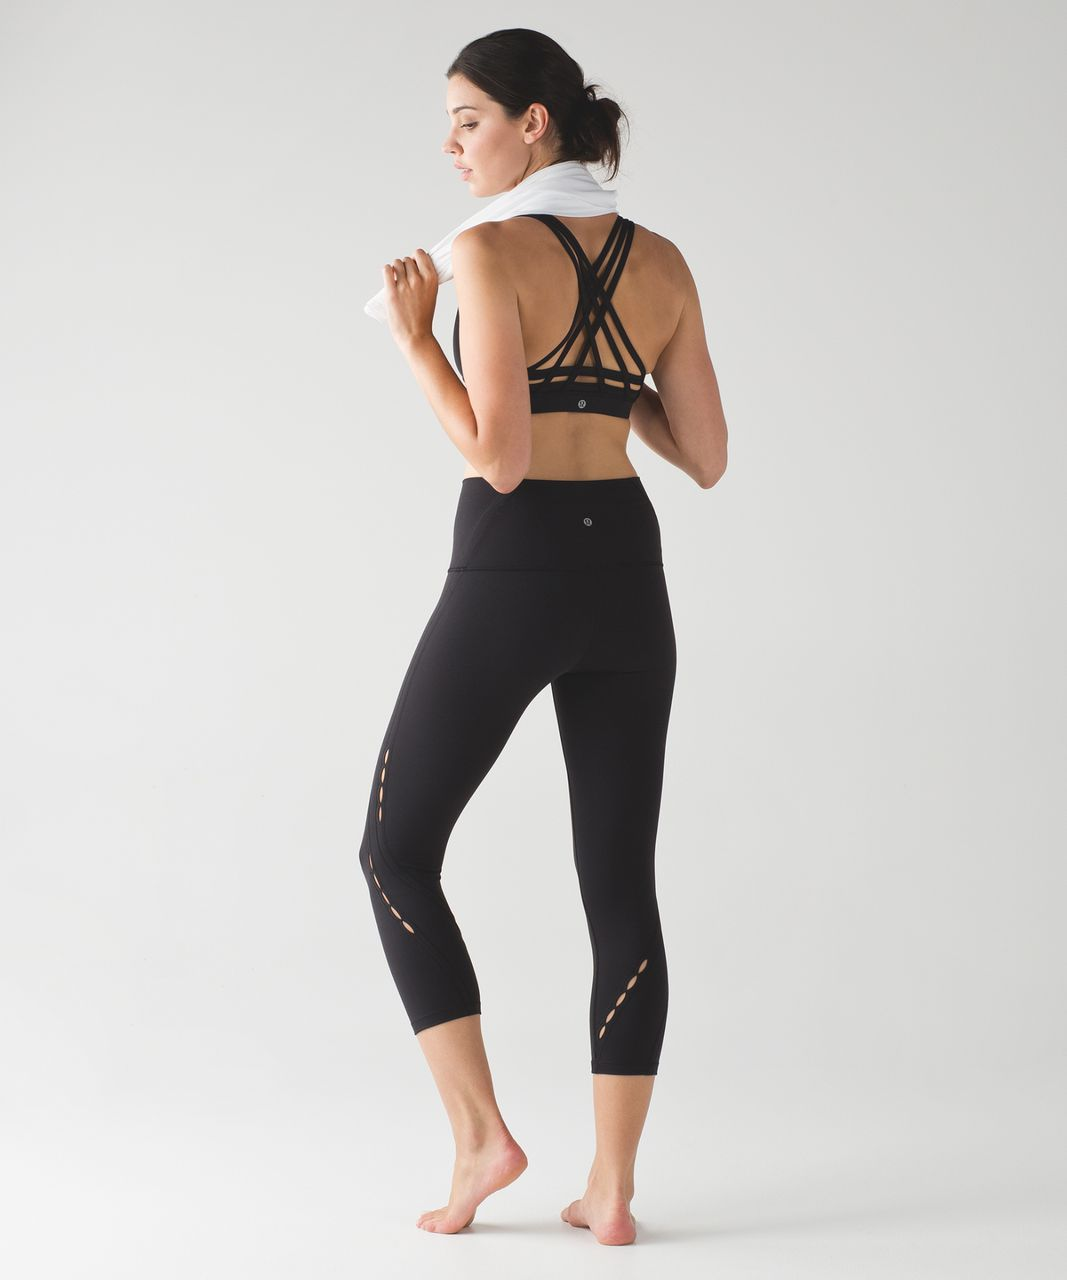 Lululemon Wunder Under Crop (Hi-Rise) (Peek) - Black